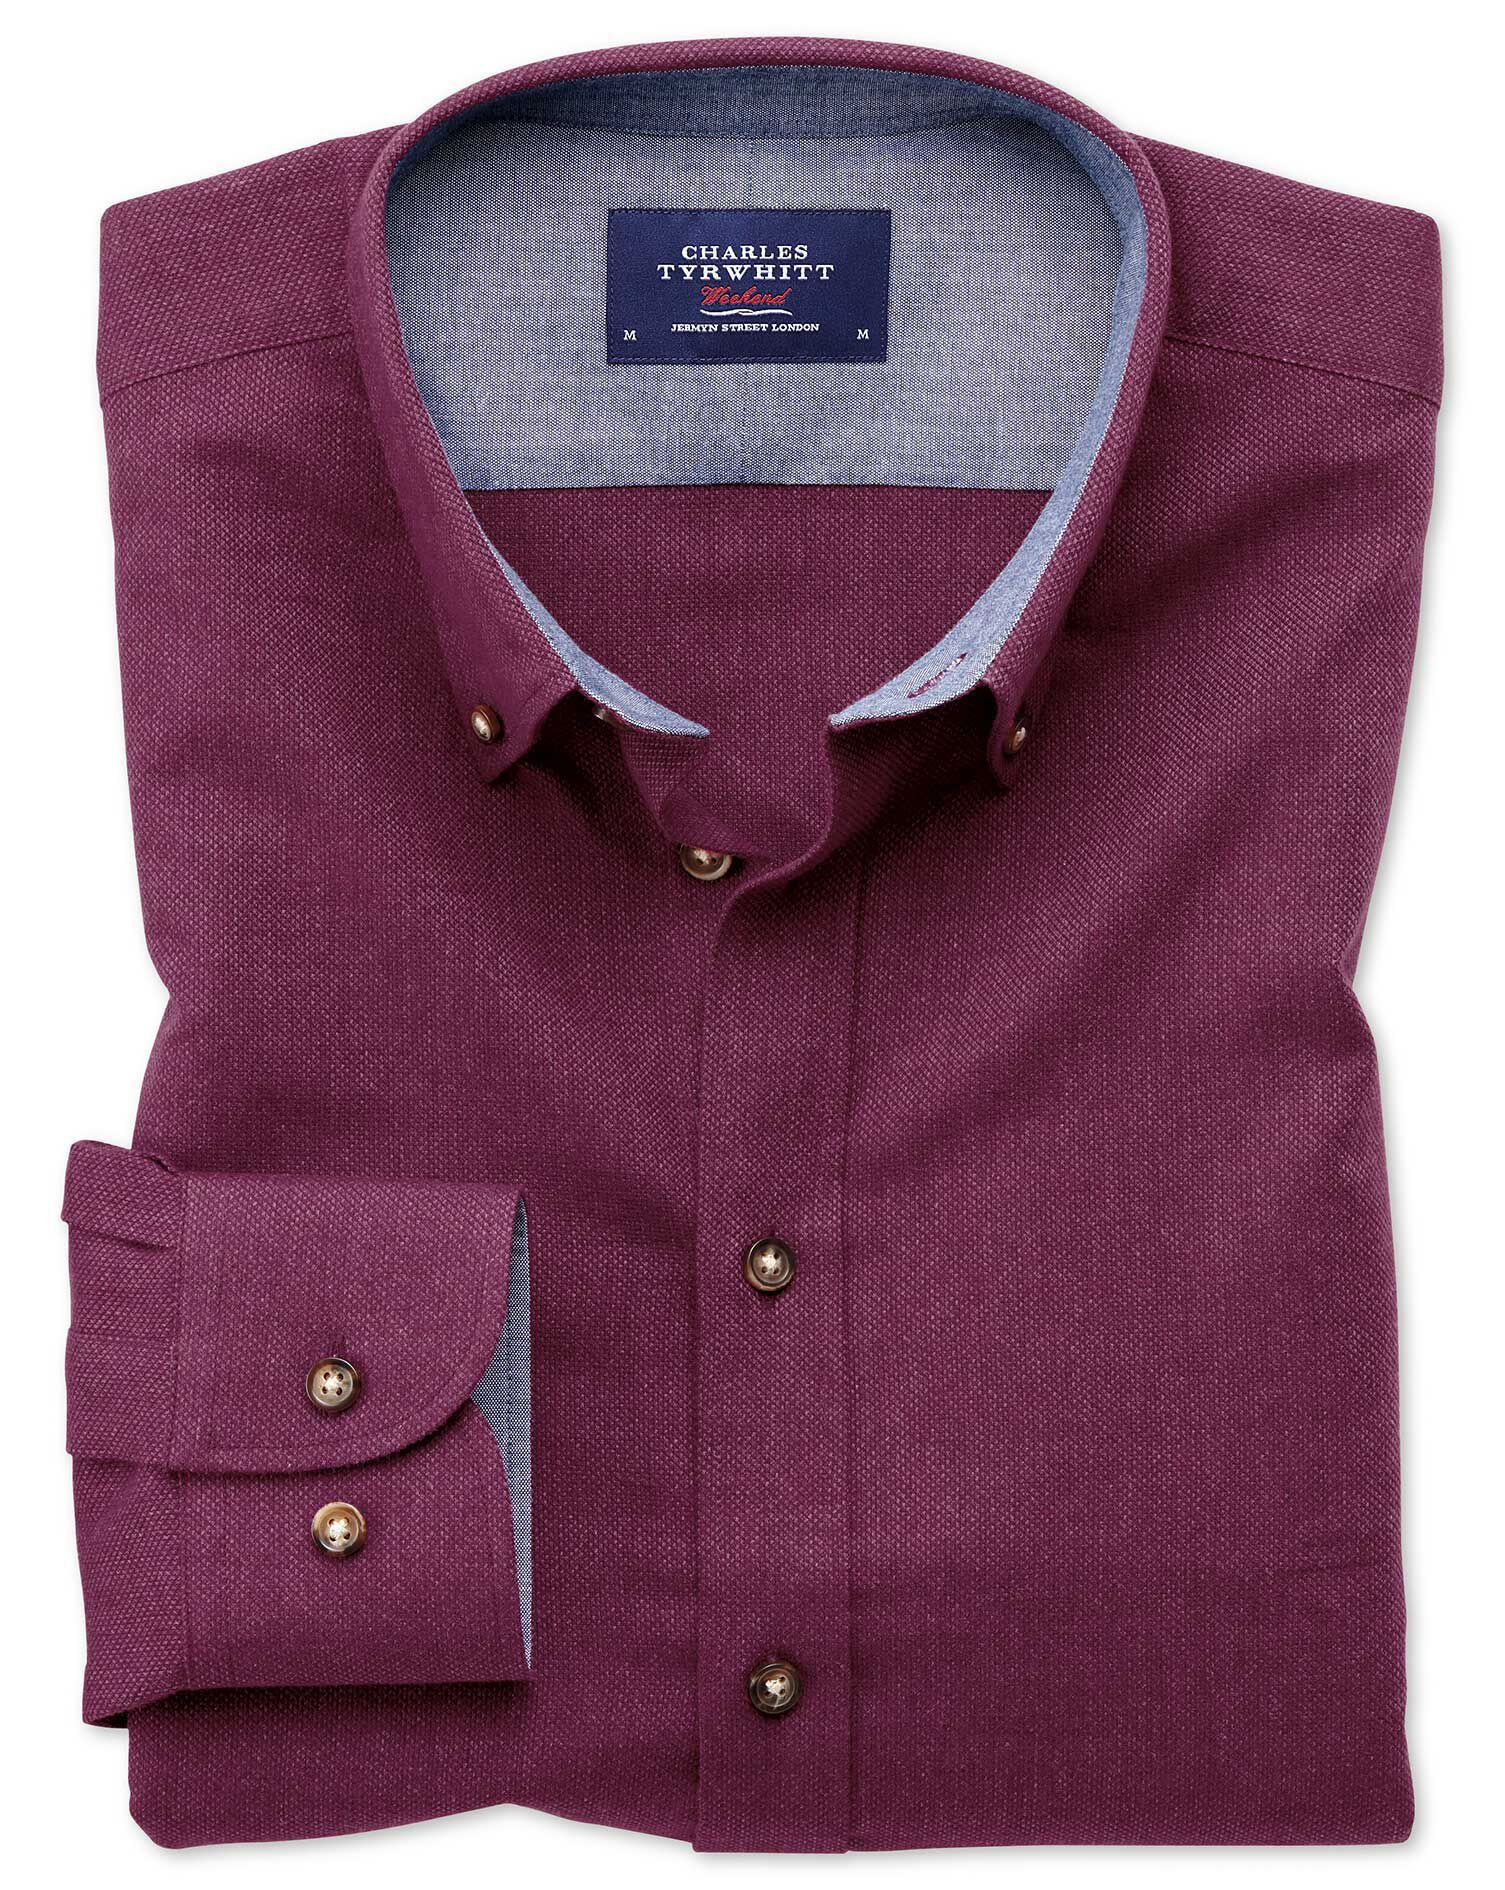 Slim Fit Button-Down Soft Cotton Plain Berry Shirt Single Cuff Size Medium by Charles Tyrwhitt